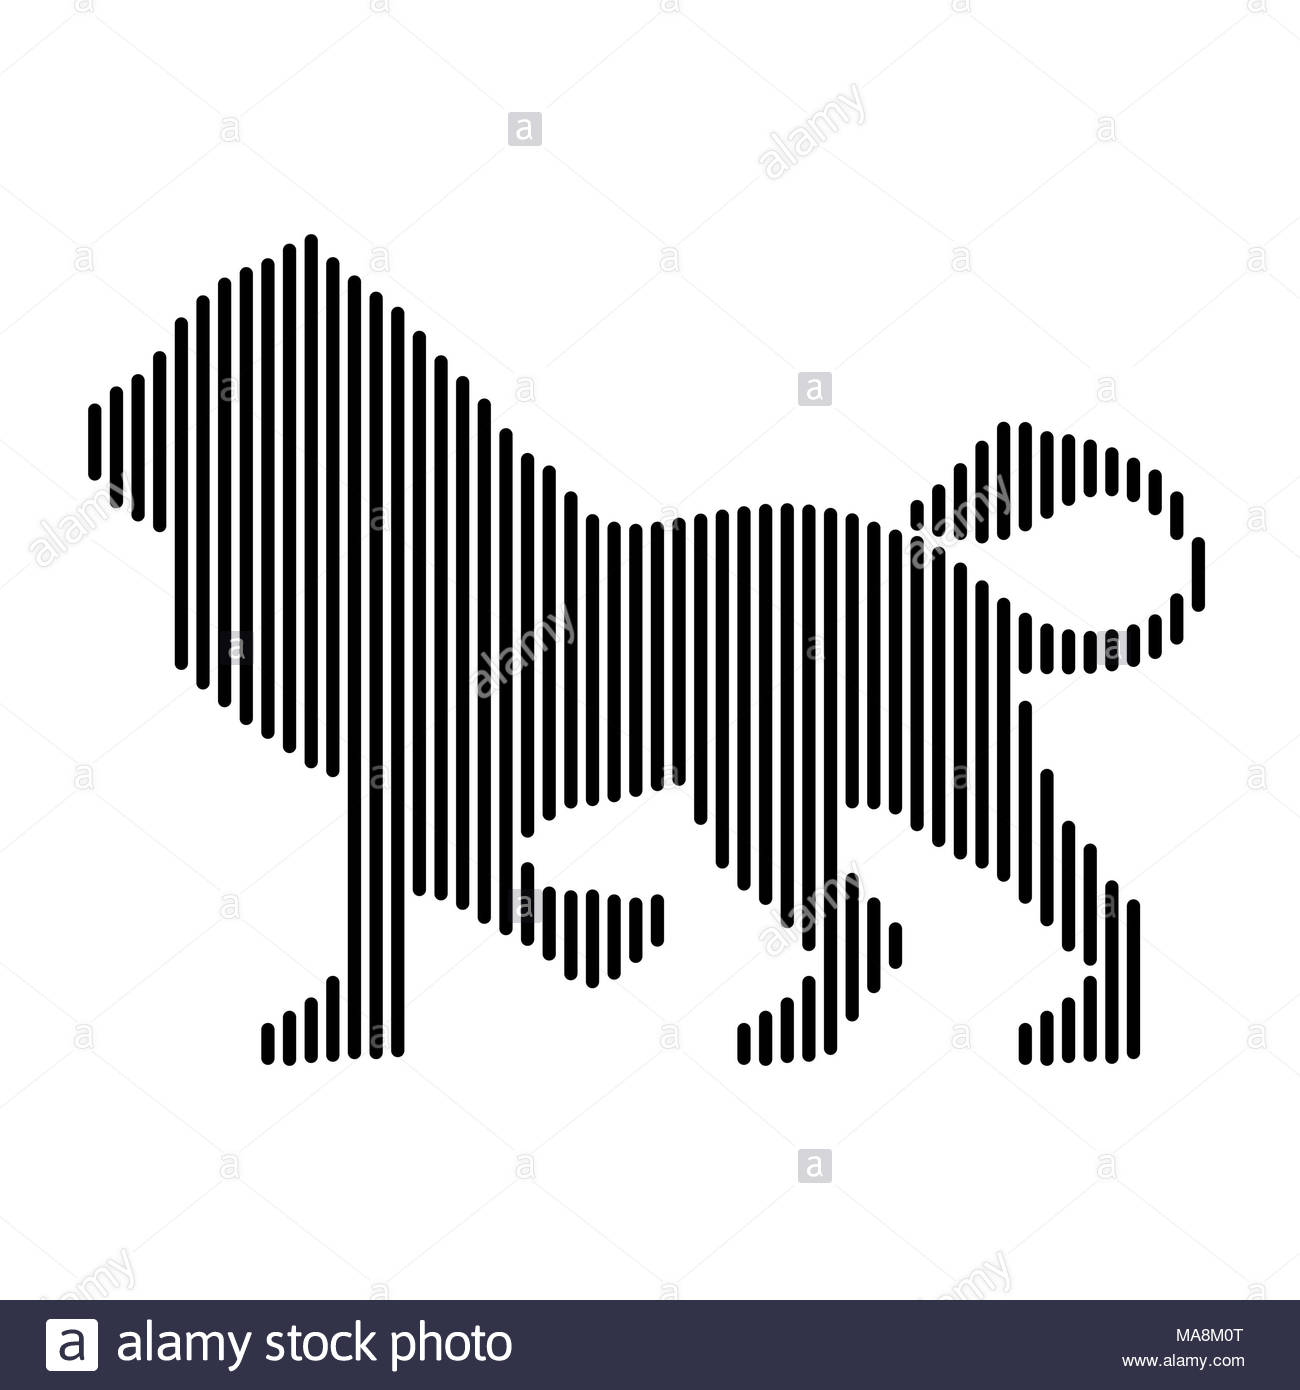 King of beasts stock photos king of beasts stock images alamy lion the king of beasts symbols stock image biocorpaavc Gallery